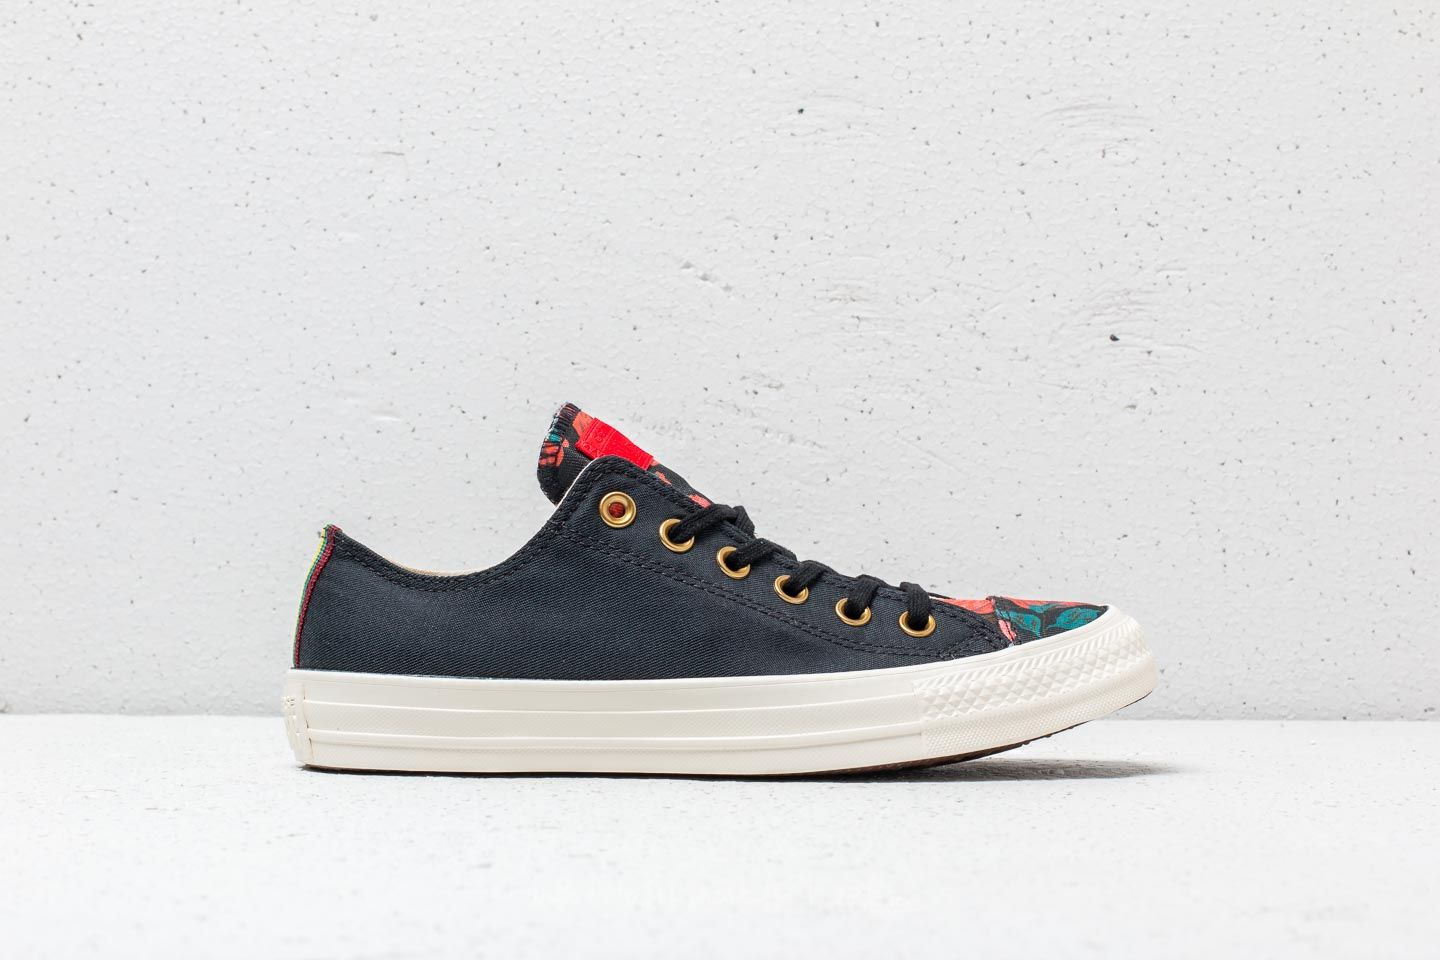 Converse Chuck Taylor All Star OX Black Cherry Red Egret